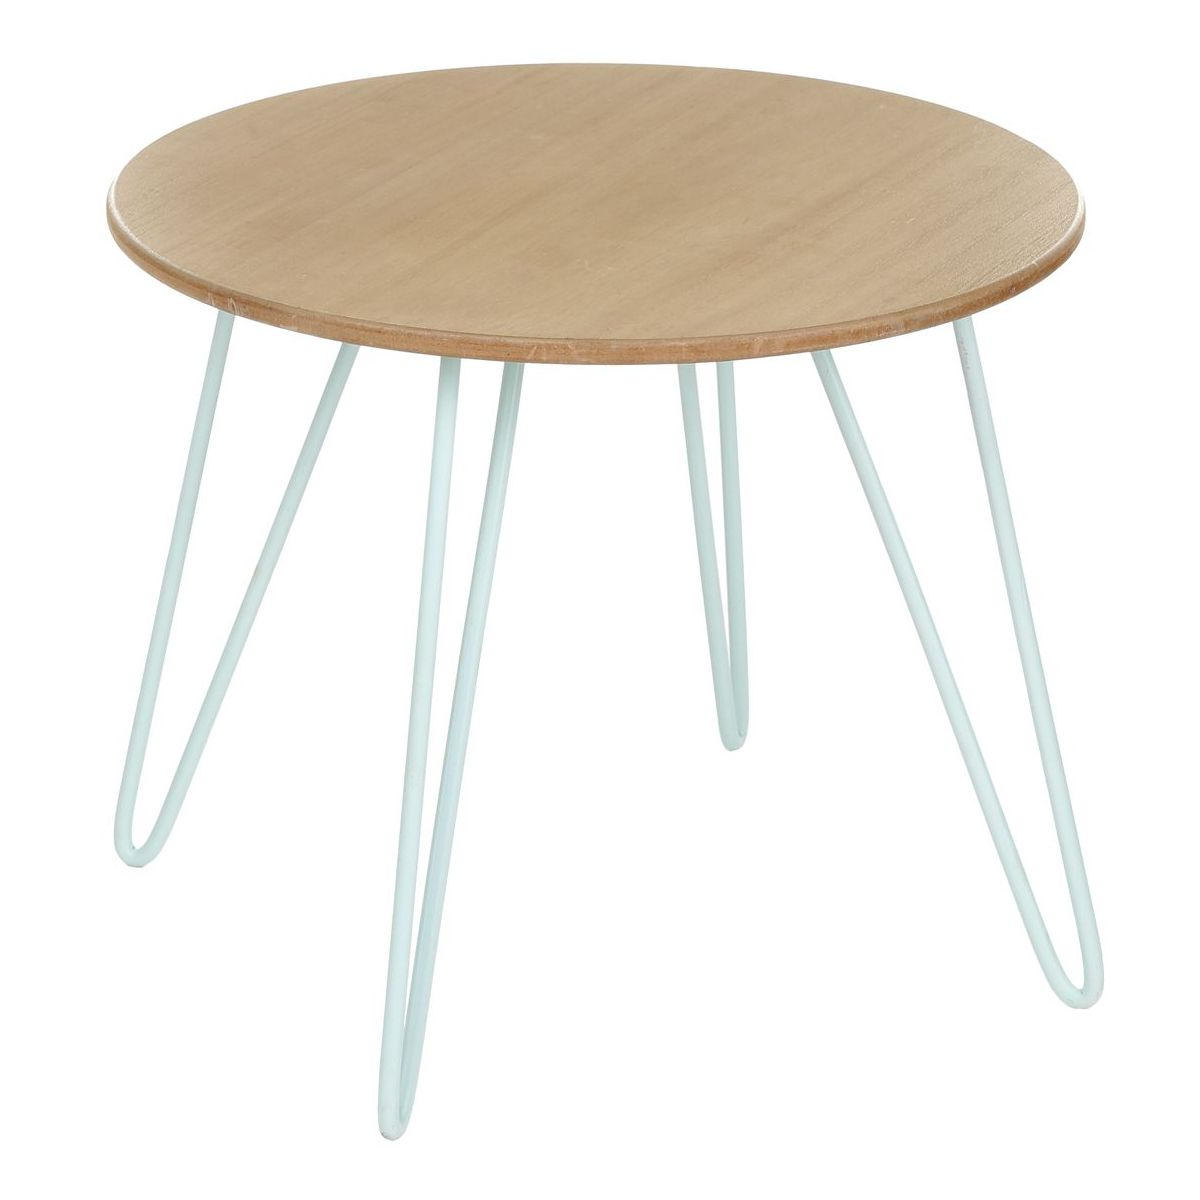 Table Basse Ronde Bleue Metsa 48 X H 40 Cm Avec Images Table